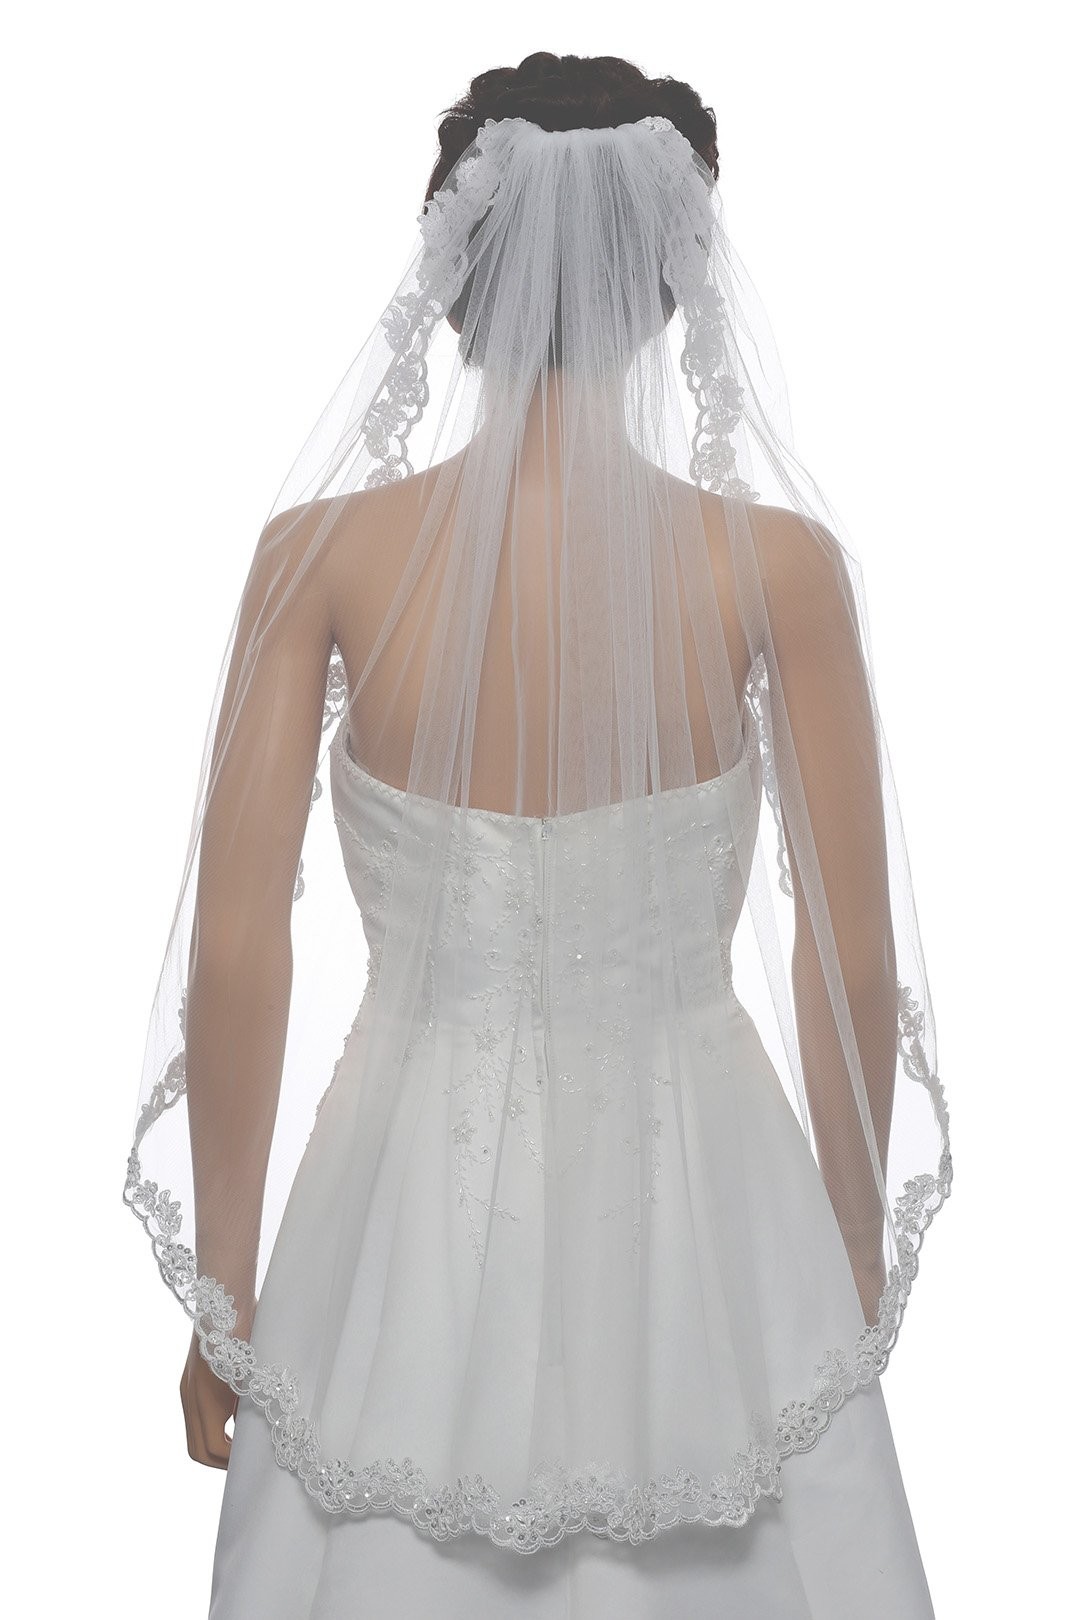 1T 1 Tier Floral Scallop Embroided Lace Pearl Veil - Ivory Fingertip Length 36'' V471